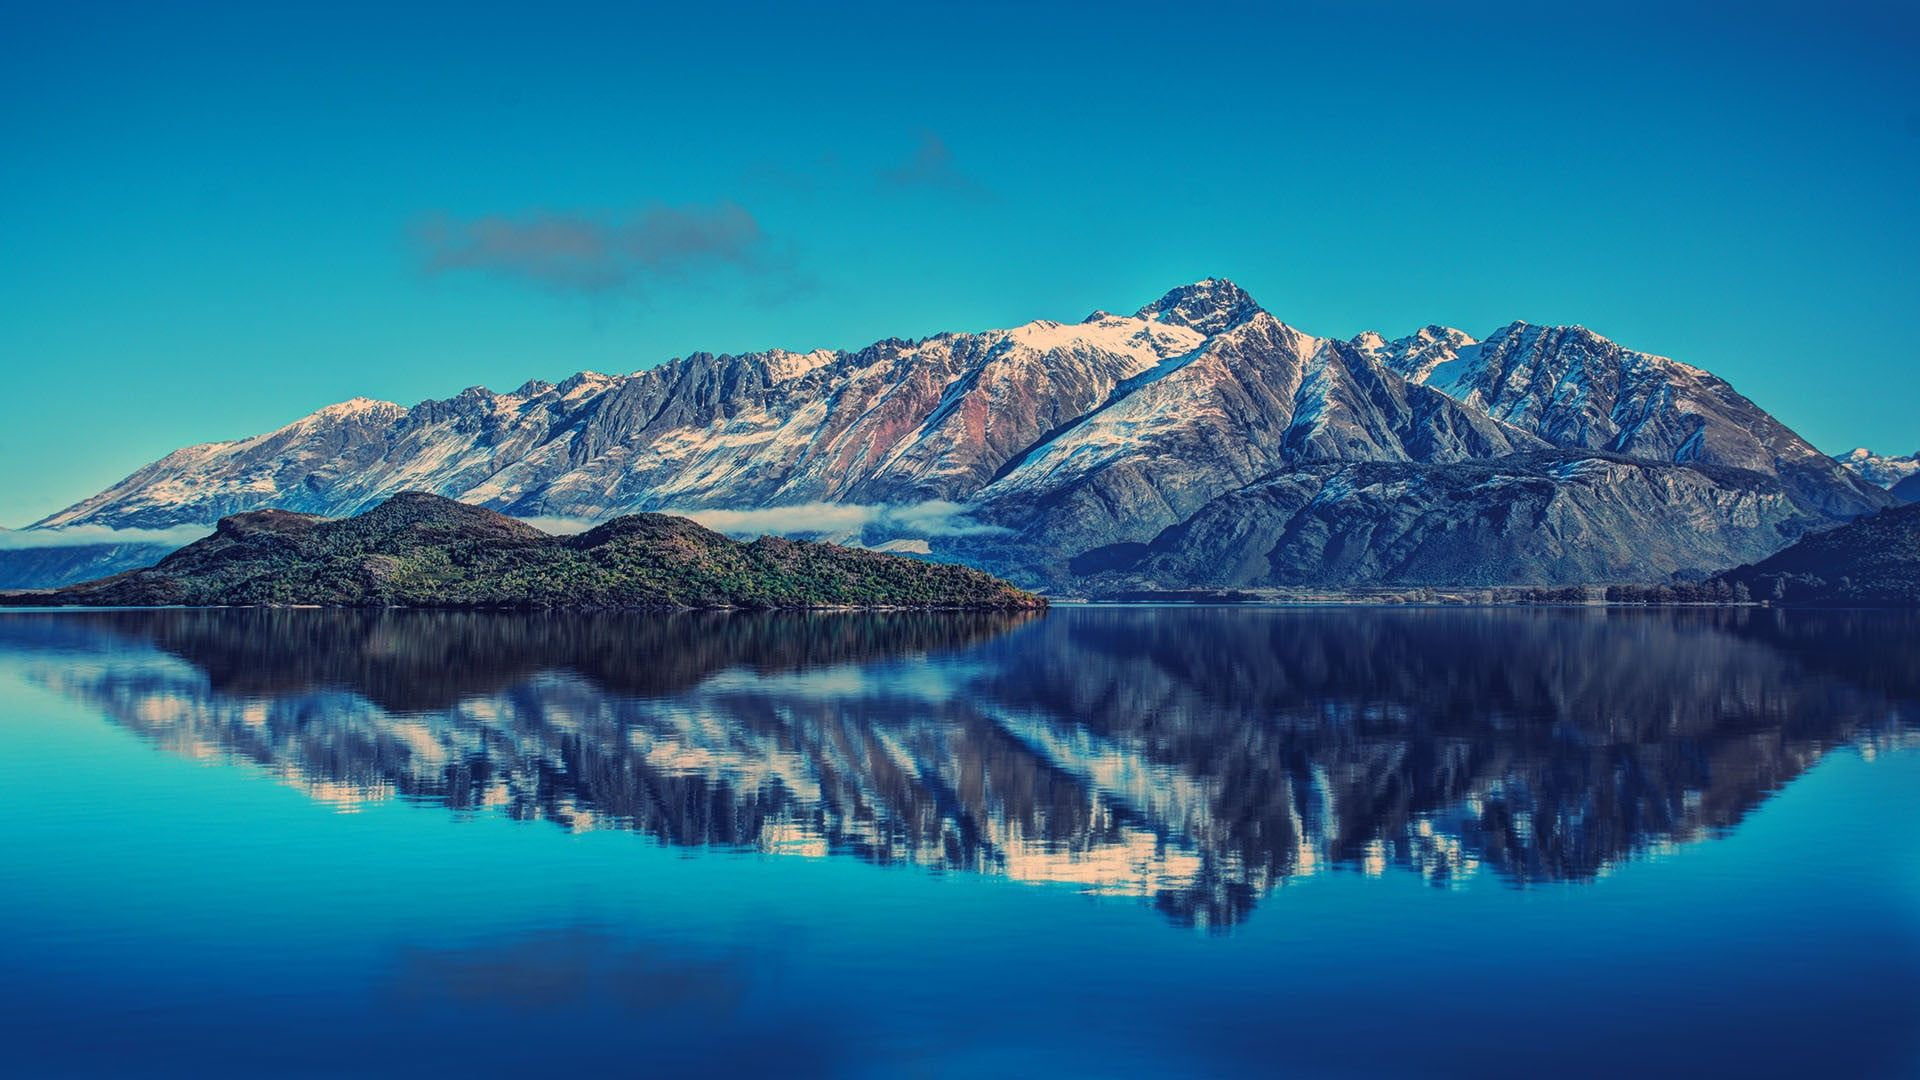 Mountain Ranges And Body Of Water Selective Focus Photography Of Island Landscape Mountains Lake Water Refle New Zealand Mountains Scenic Beautiful Lakes